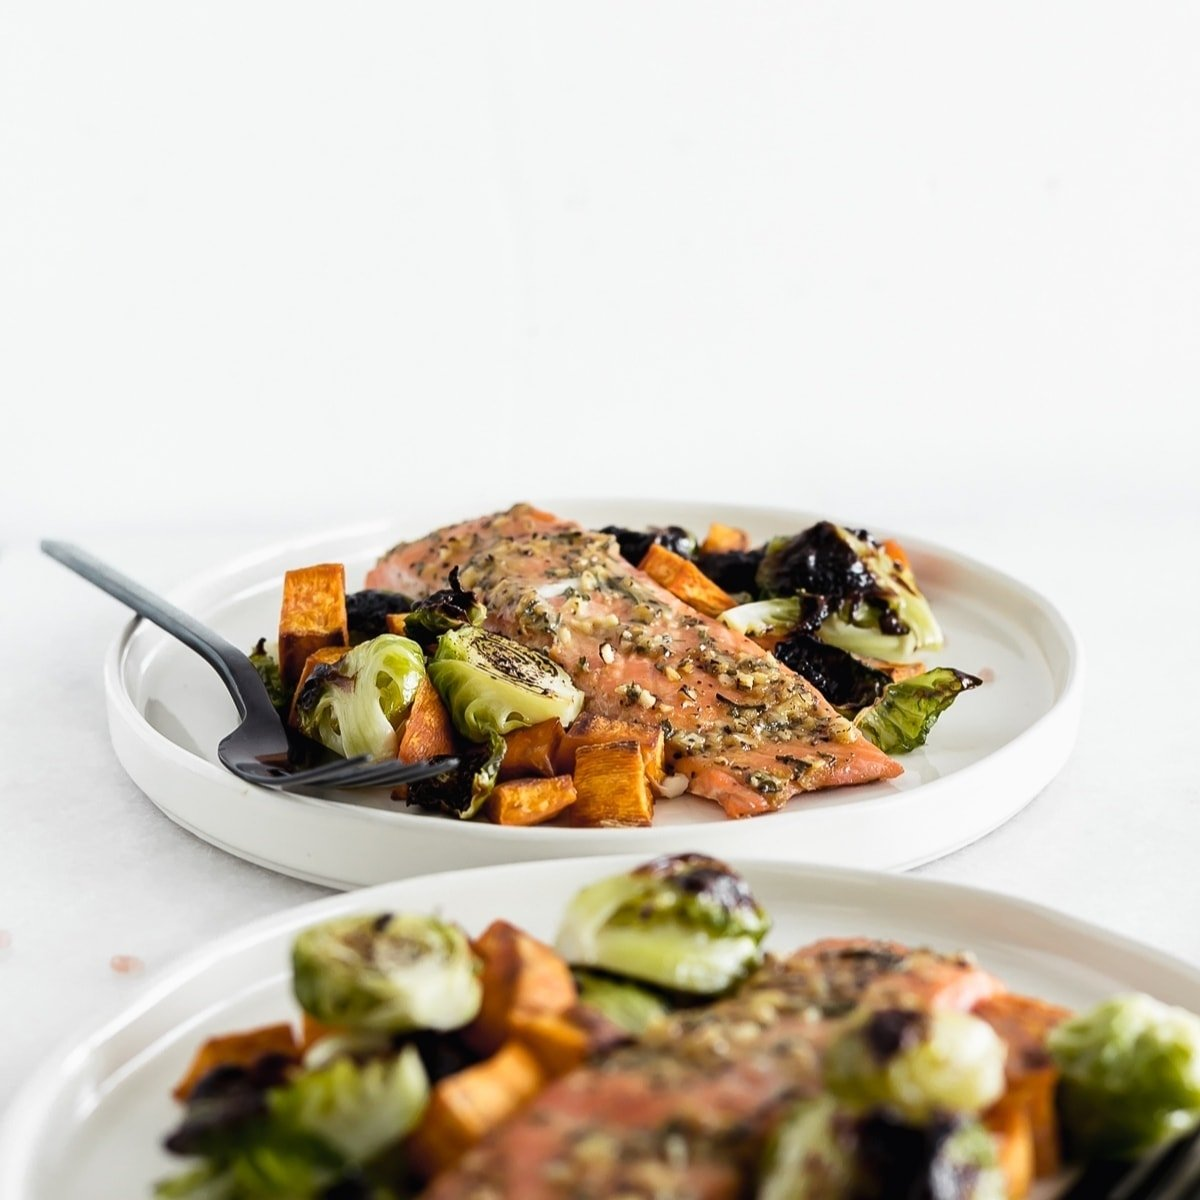 Sheet Pan Maple Dijon Salmon with Brussels Sprouts and Sweet Potatoes is an easy, healthy dinner with minimal cleanup, perfect for busy weeknights! (gluten-free, dairy-free)